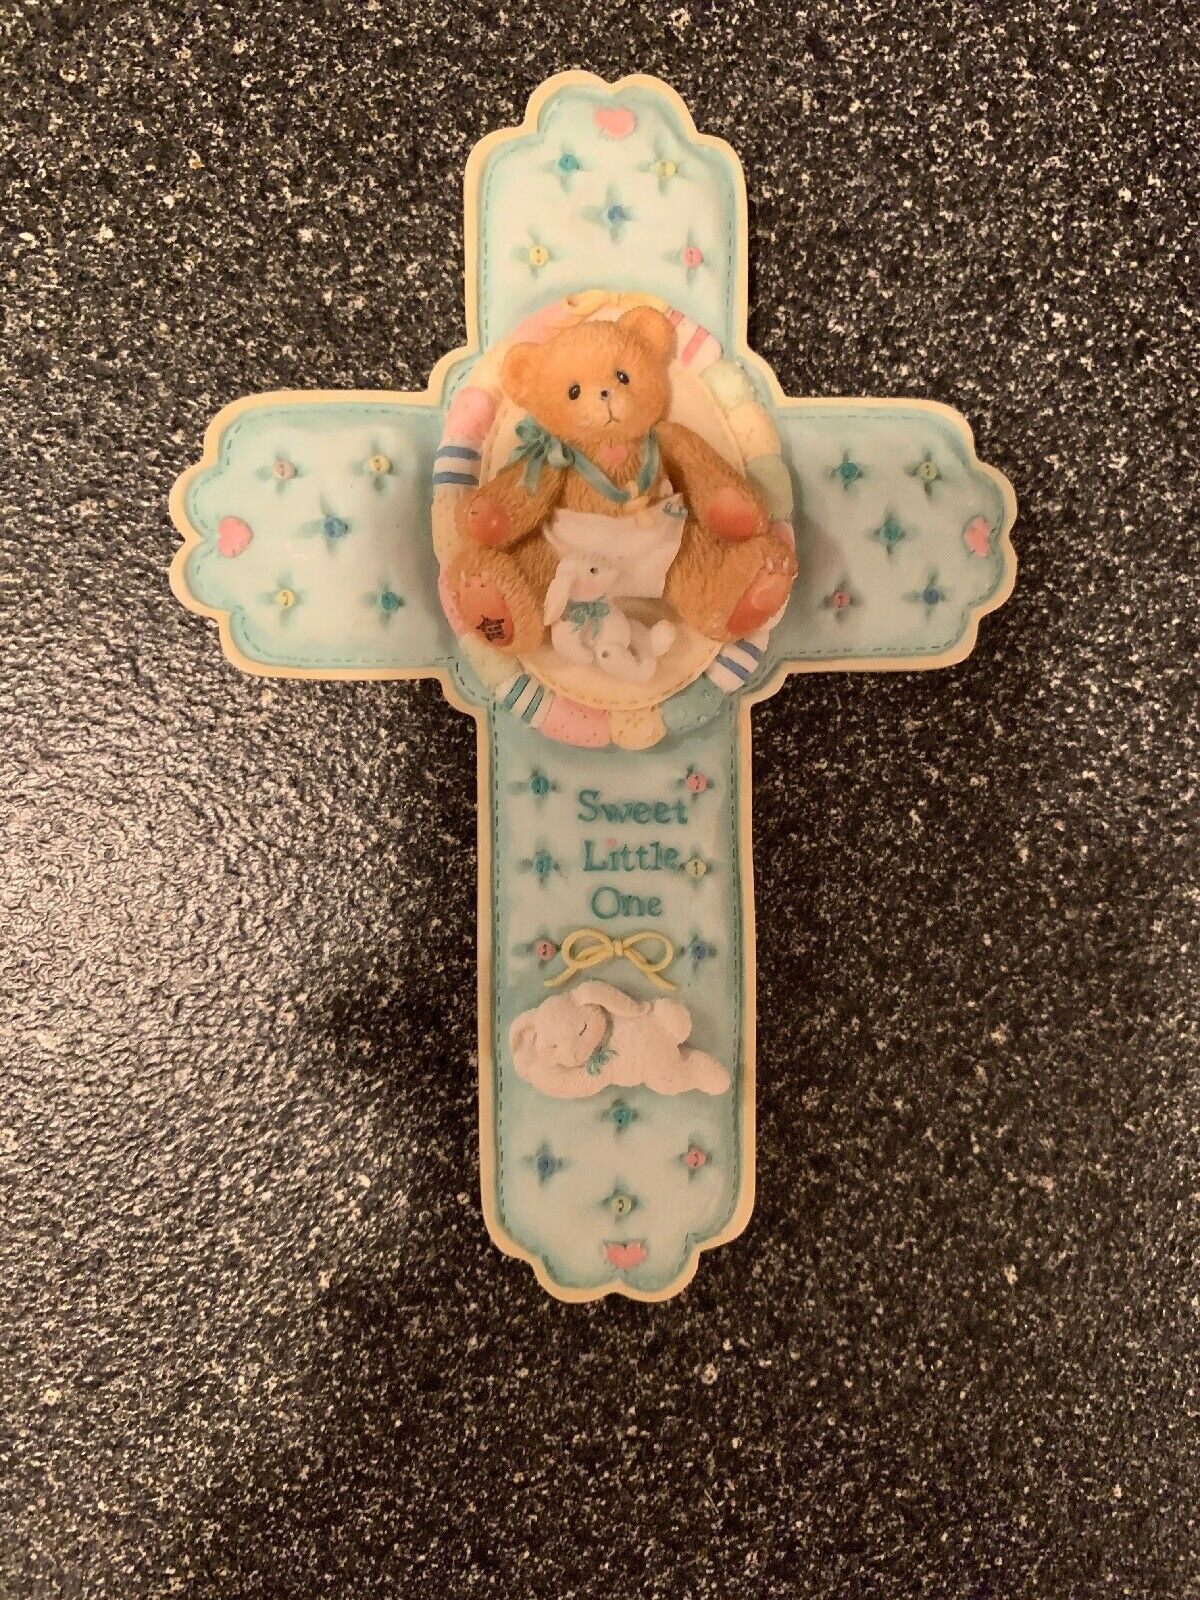 1996 Cherished Teddies Sweet Little One Baby Cross Wall Hanging 203742 Rare New